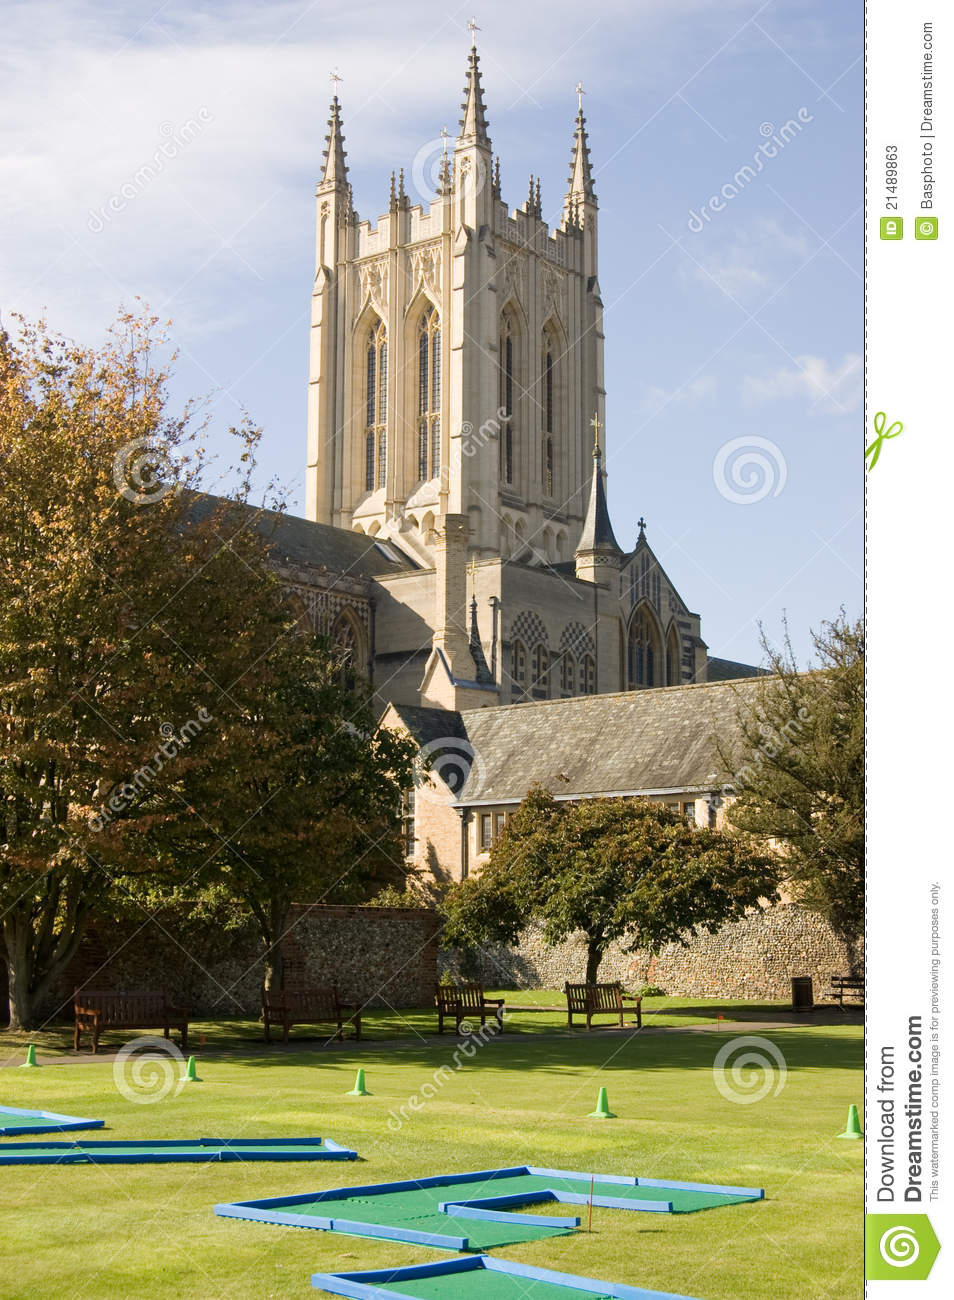 Bury St Edmunds Crazy Golf And Cathedral Stock Photos ...